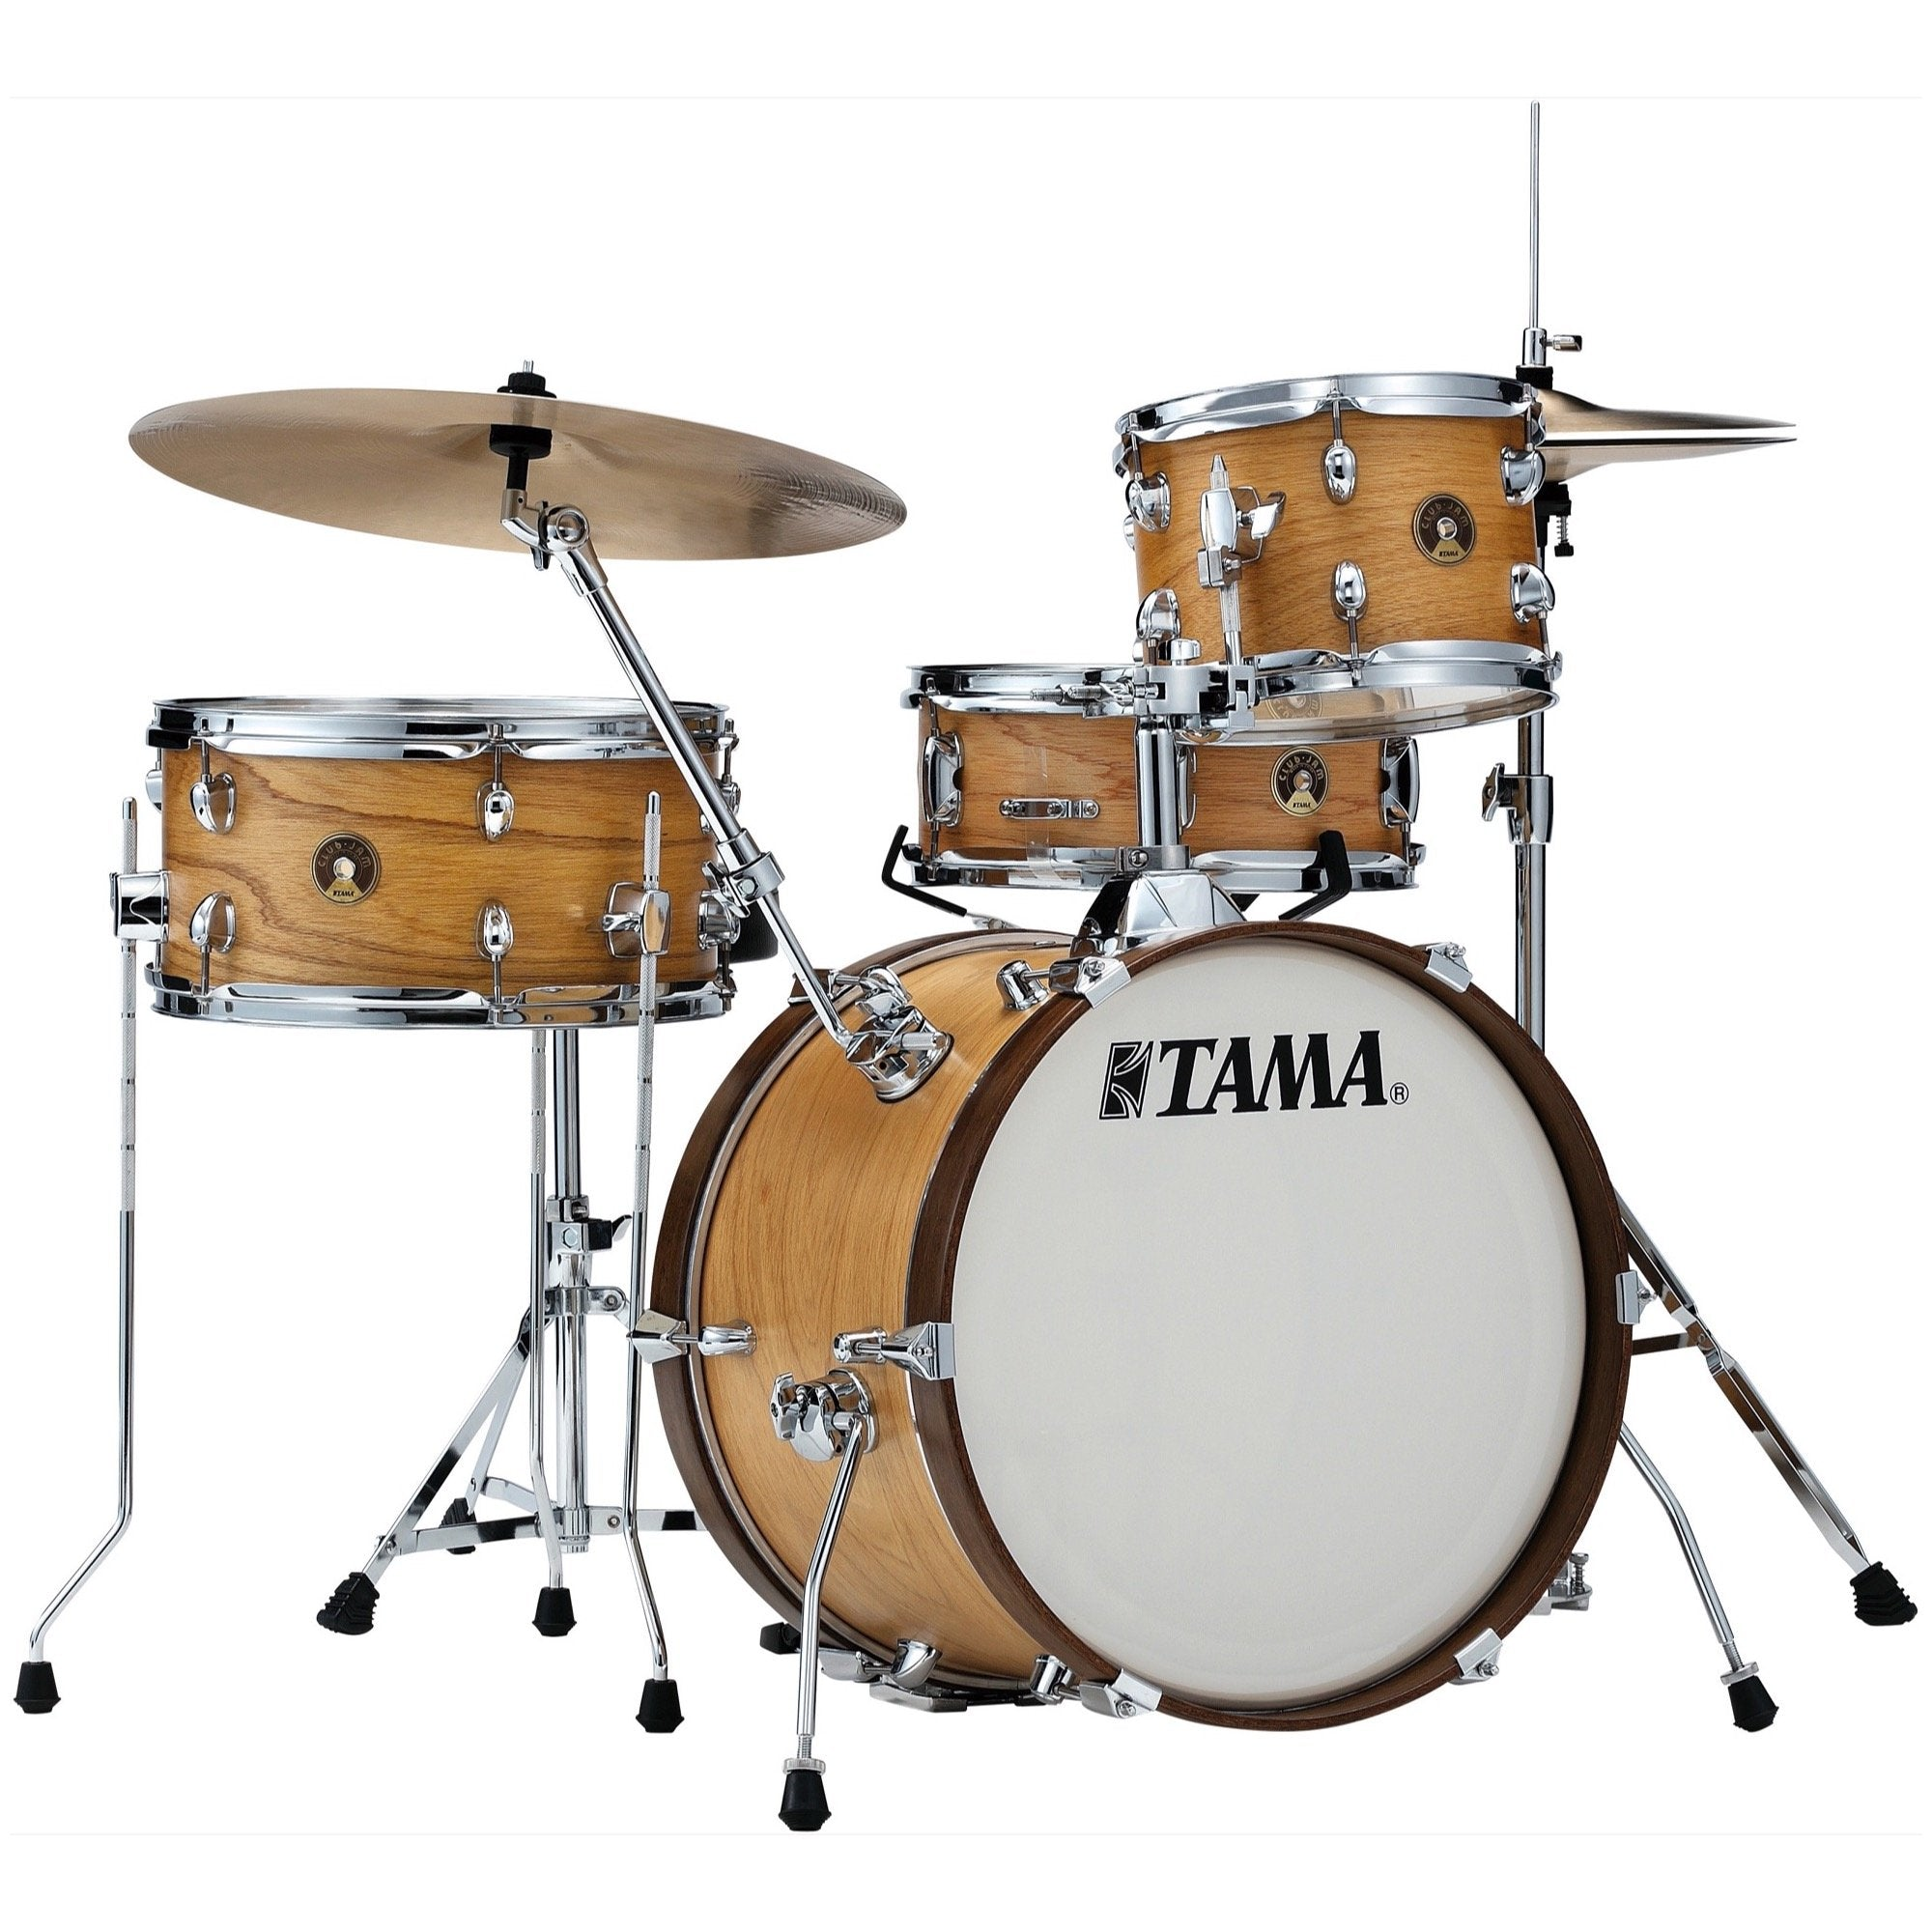 Tama Club Jam Drum Shell Kit, 4-Piece, Satin Blonde